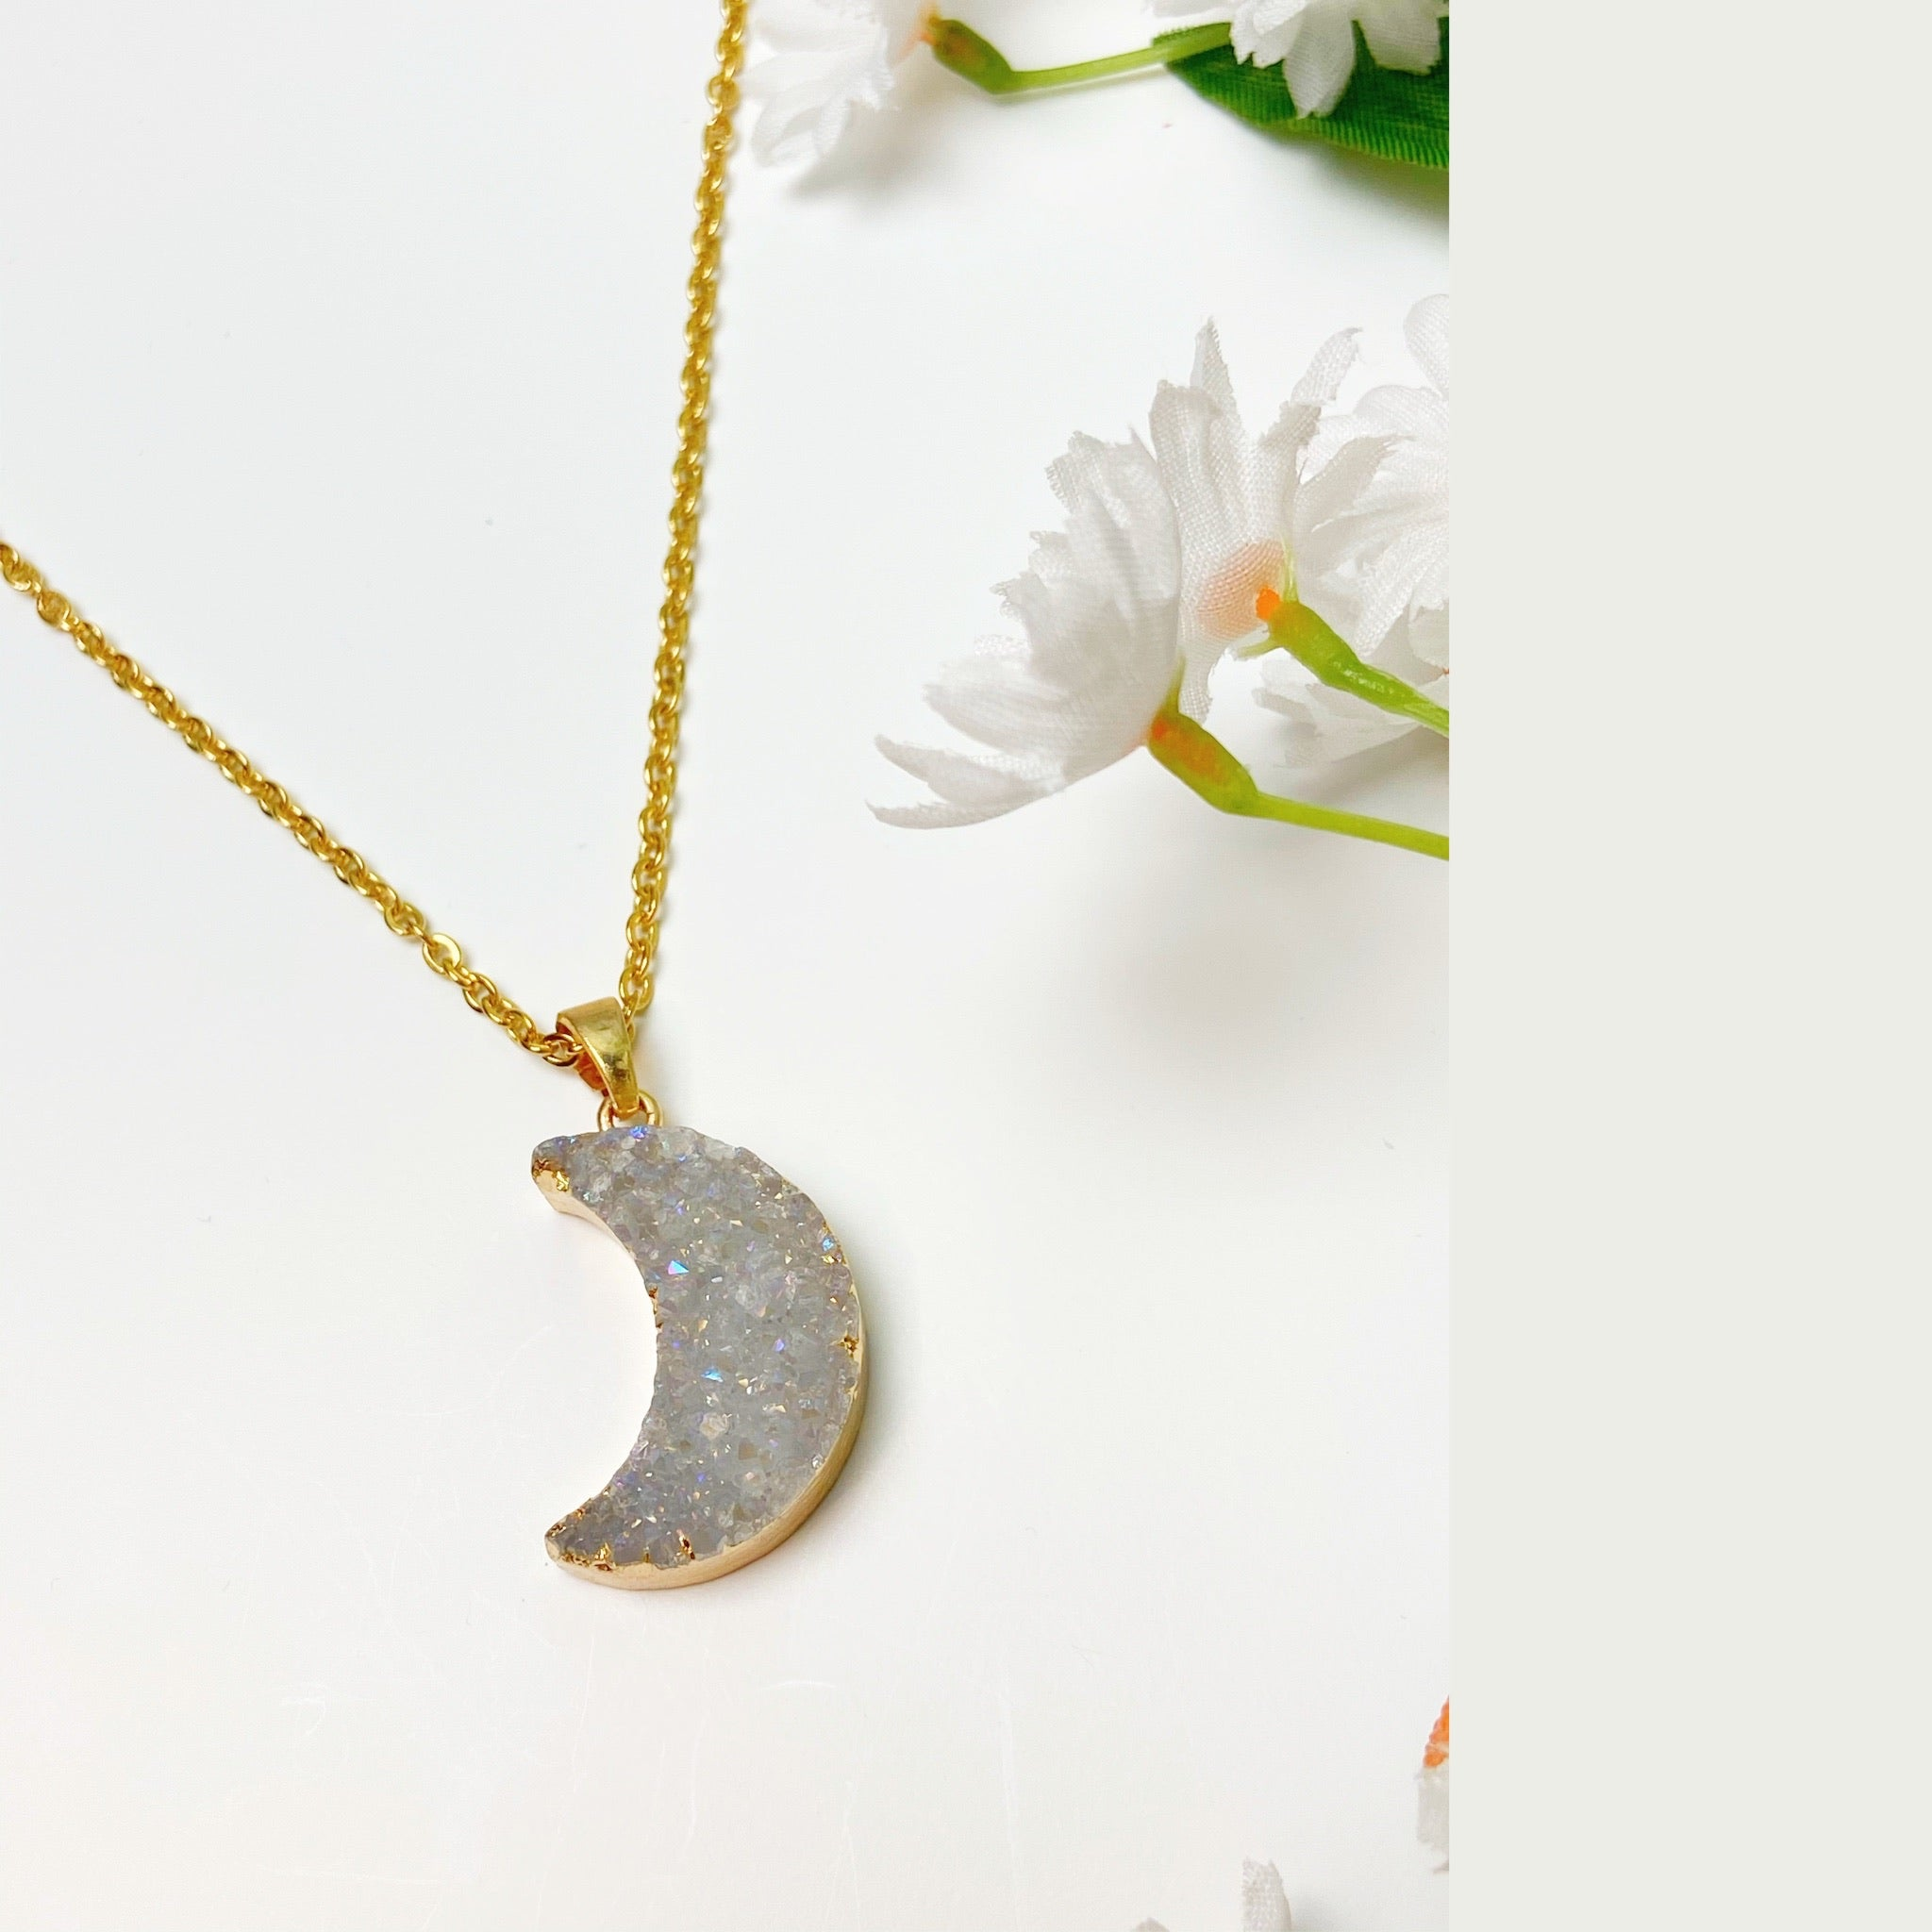 GOLD PLATED MOON-CHILD DRUZY NECKLACE